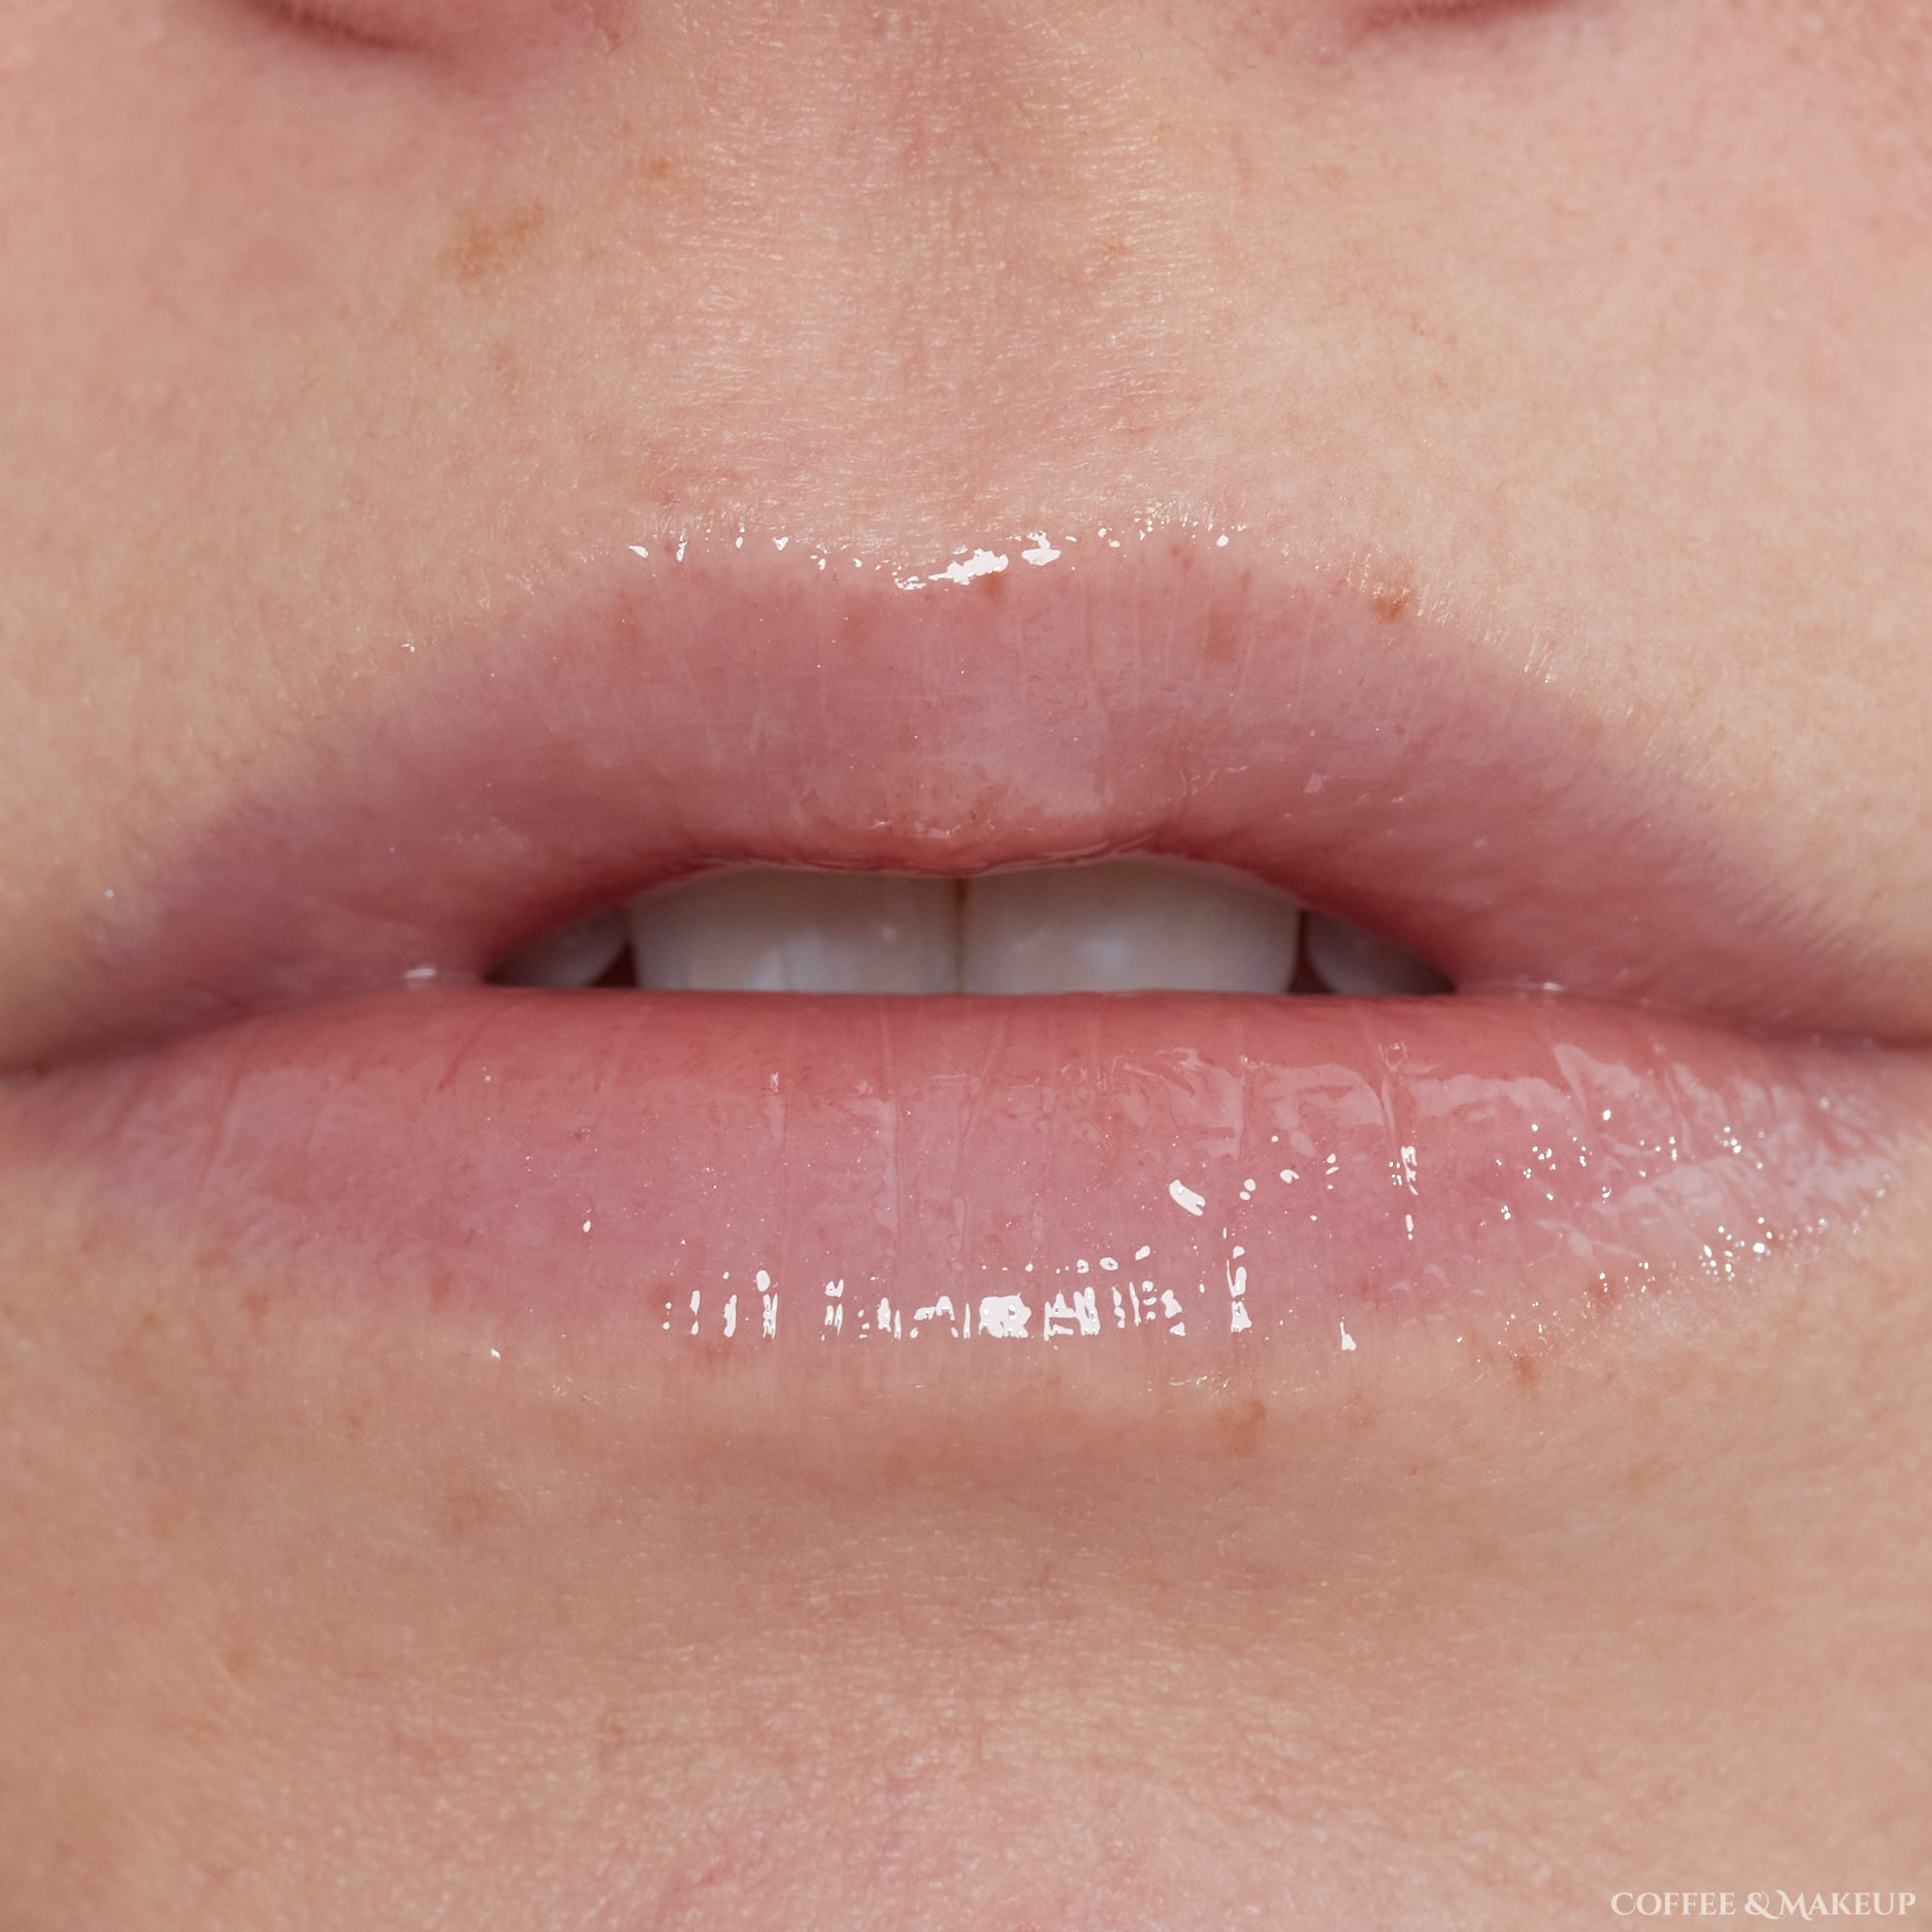 Ice | Maybelline Lifter Lip Gloss